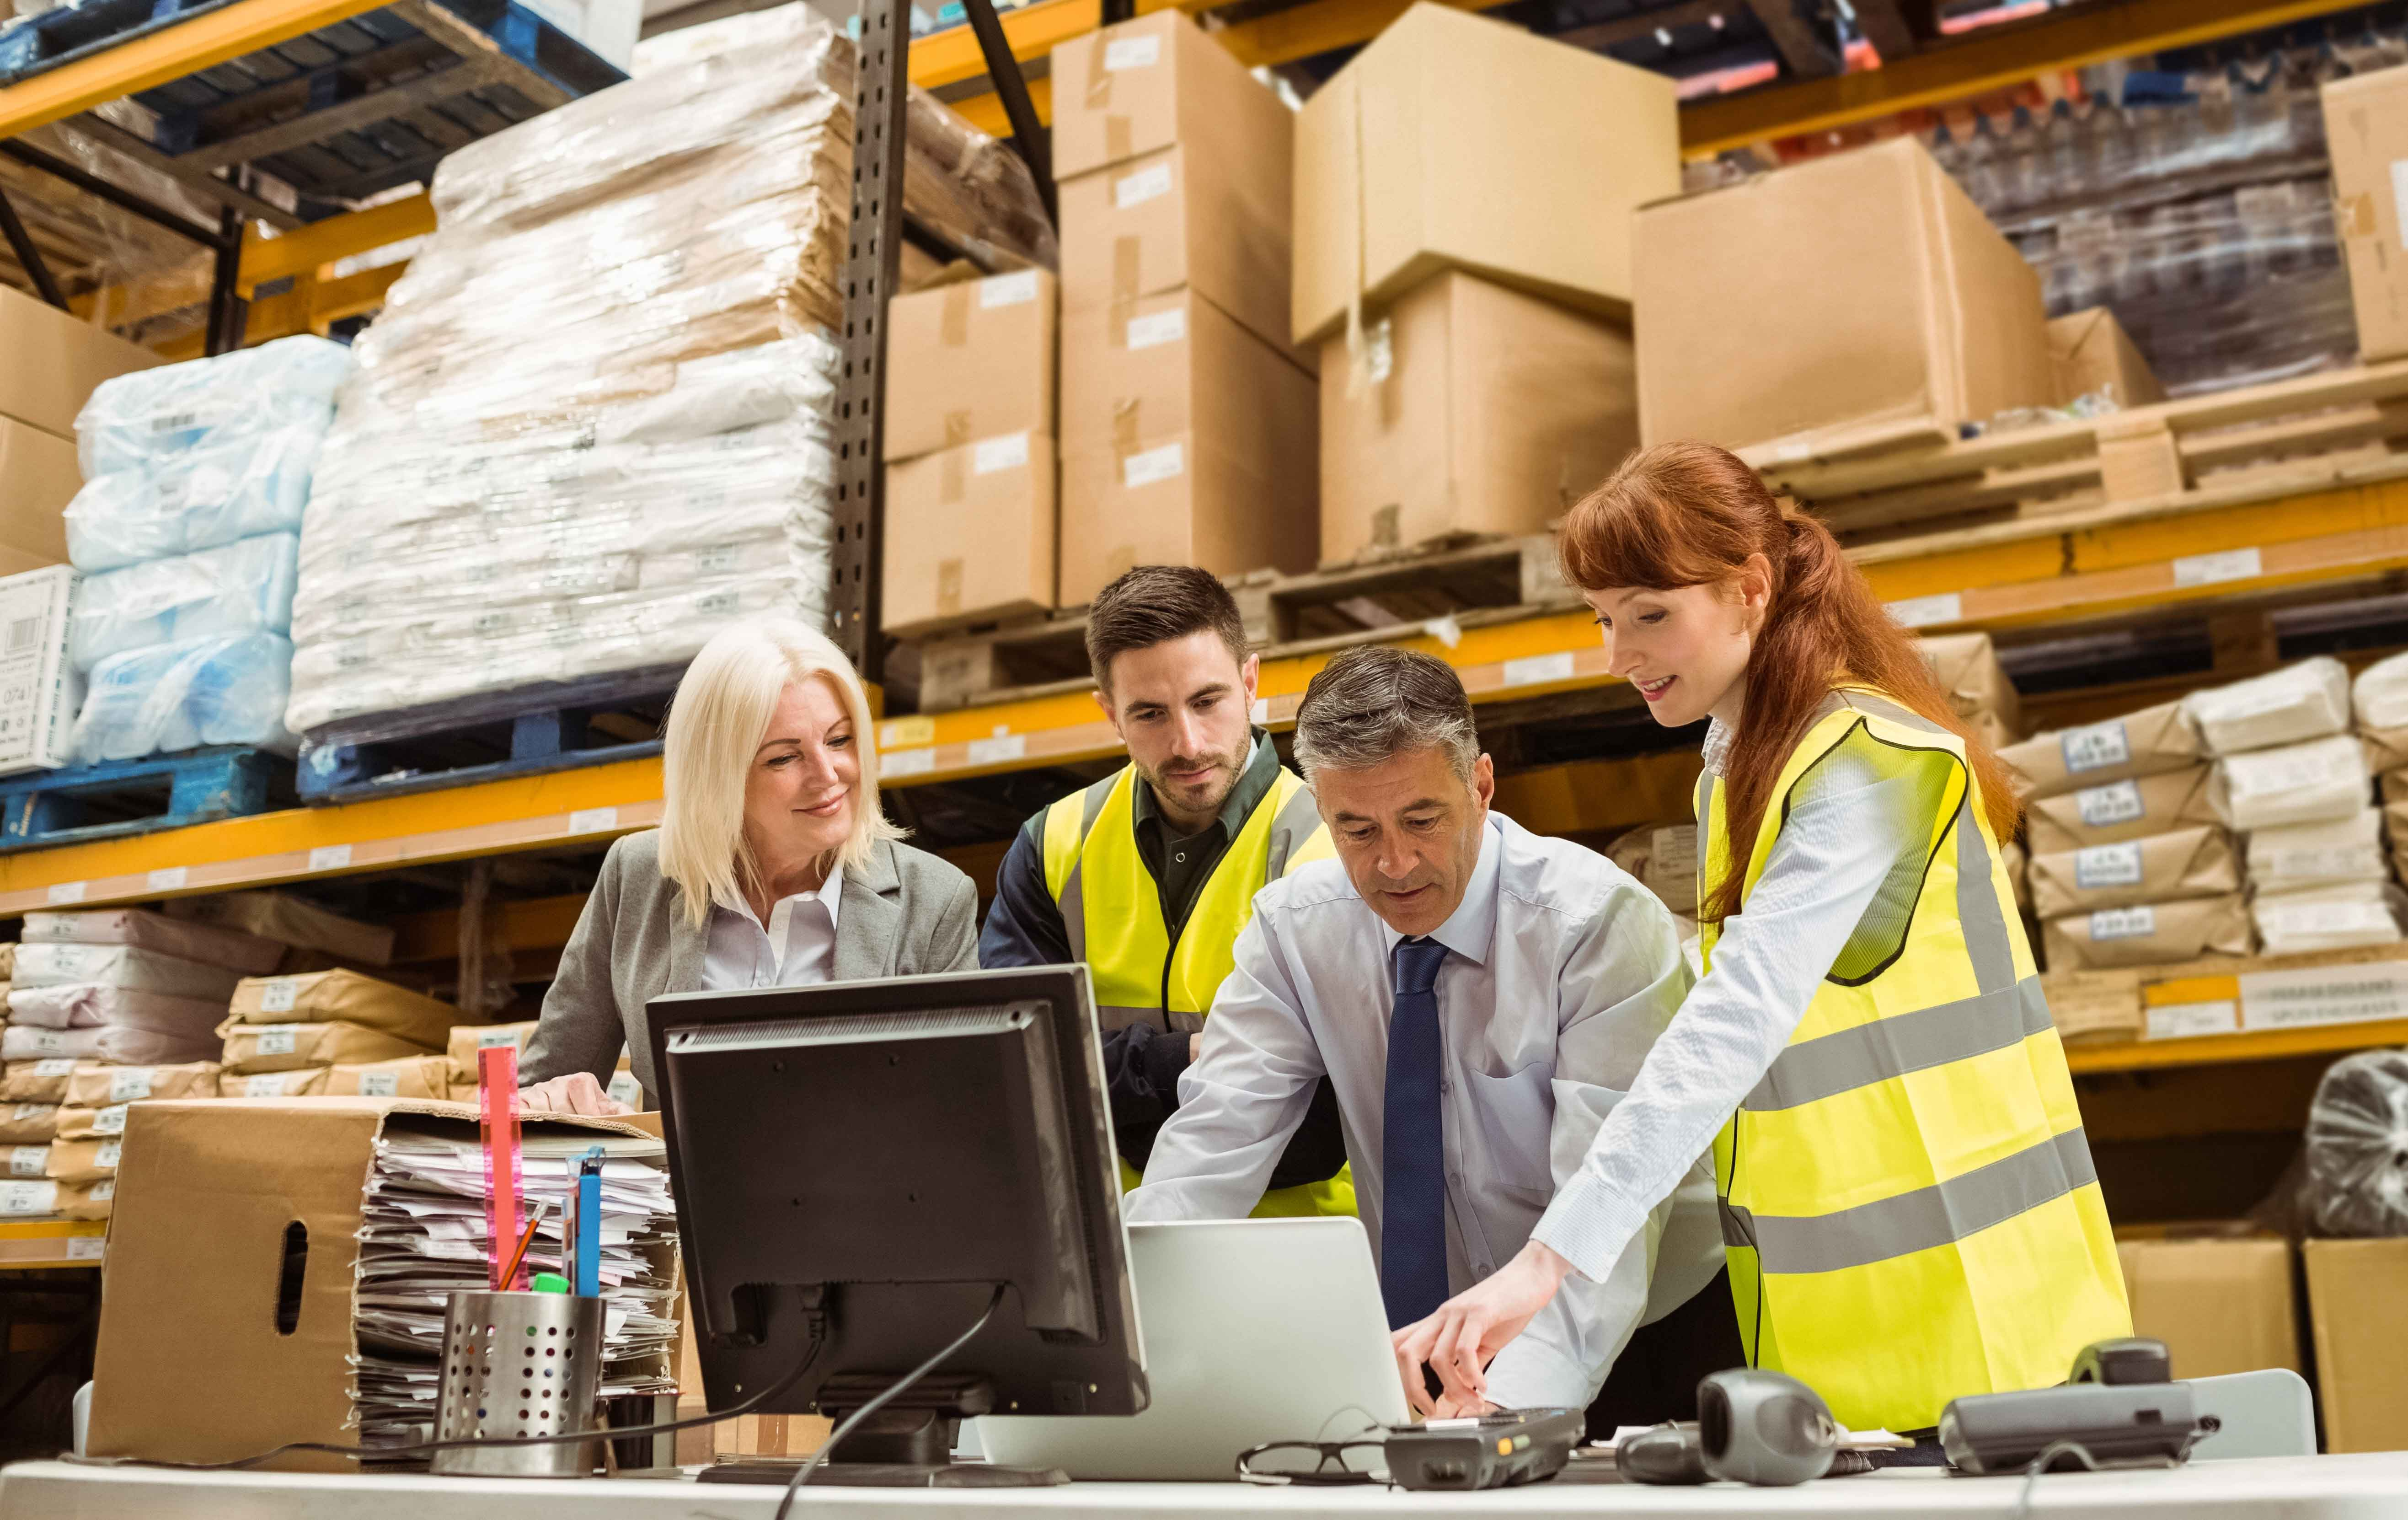 B2B & B2C Websites for Distribution and Manufacturing